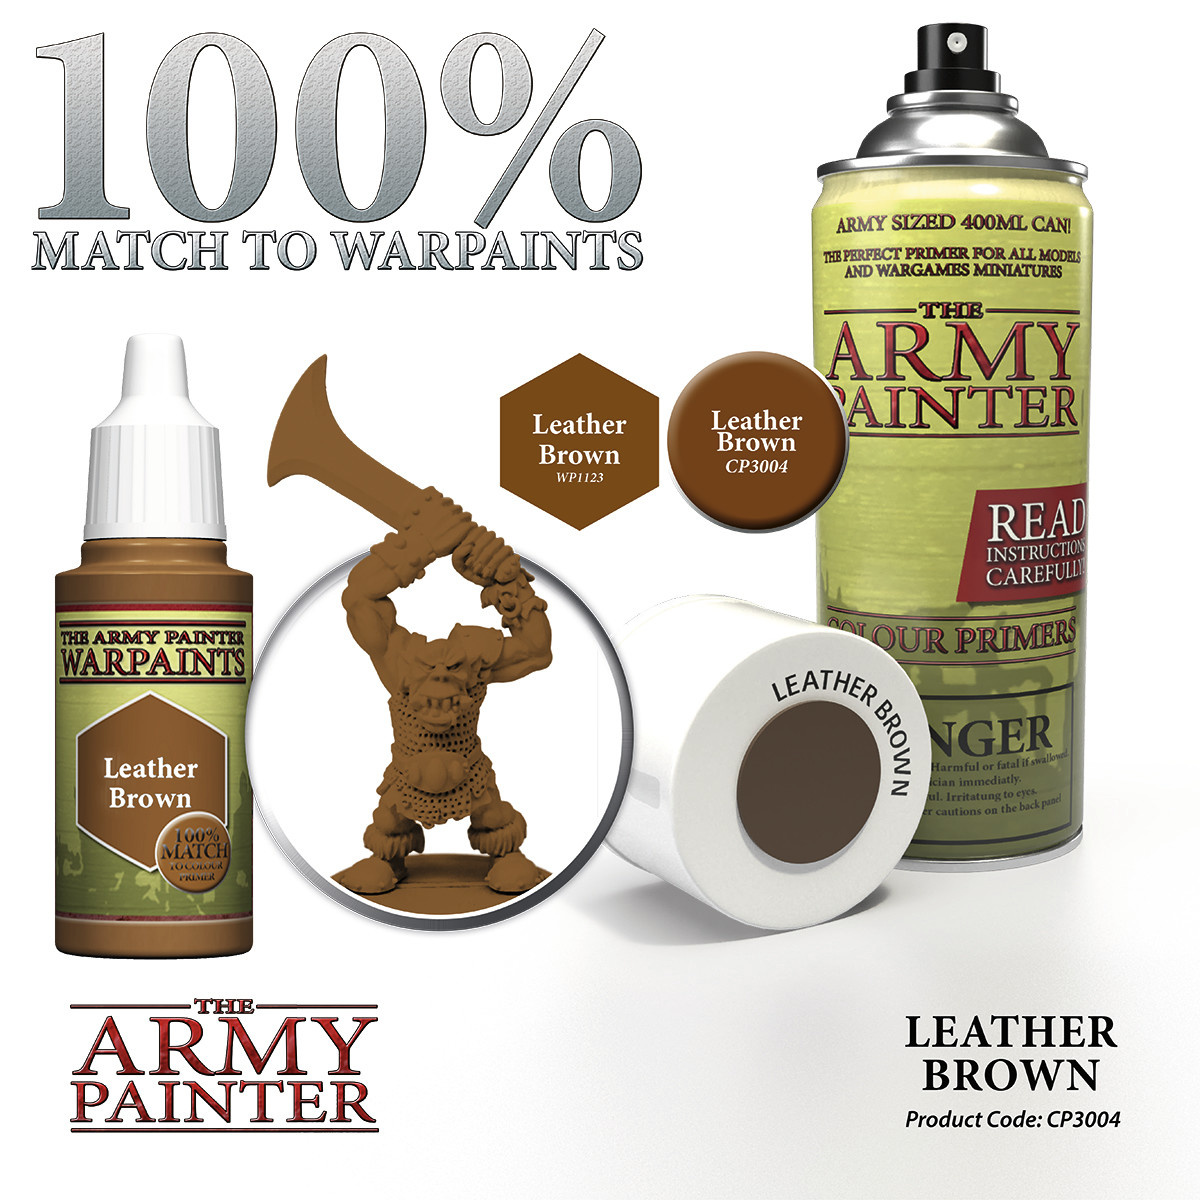 The Army Painter Primer: Colour Leather Brown